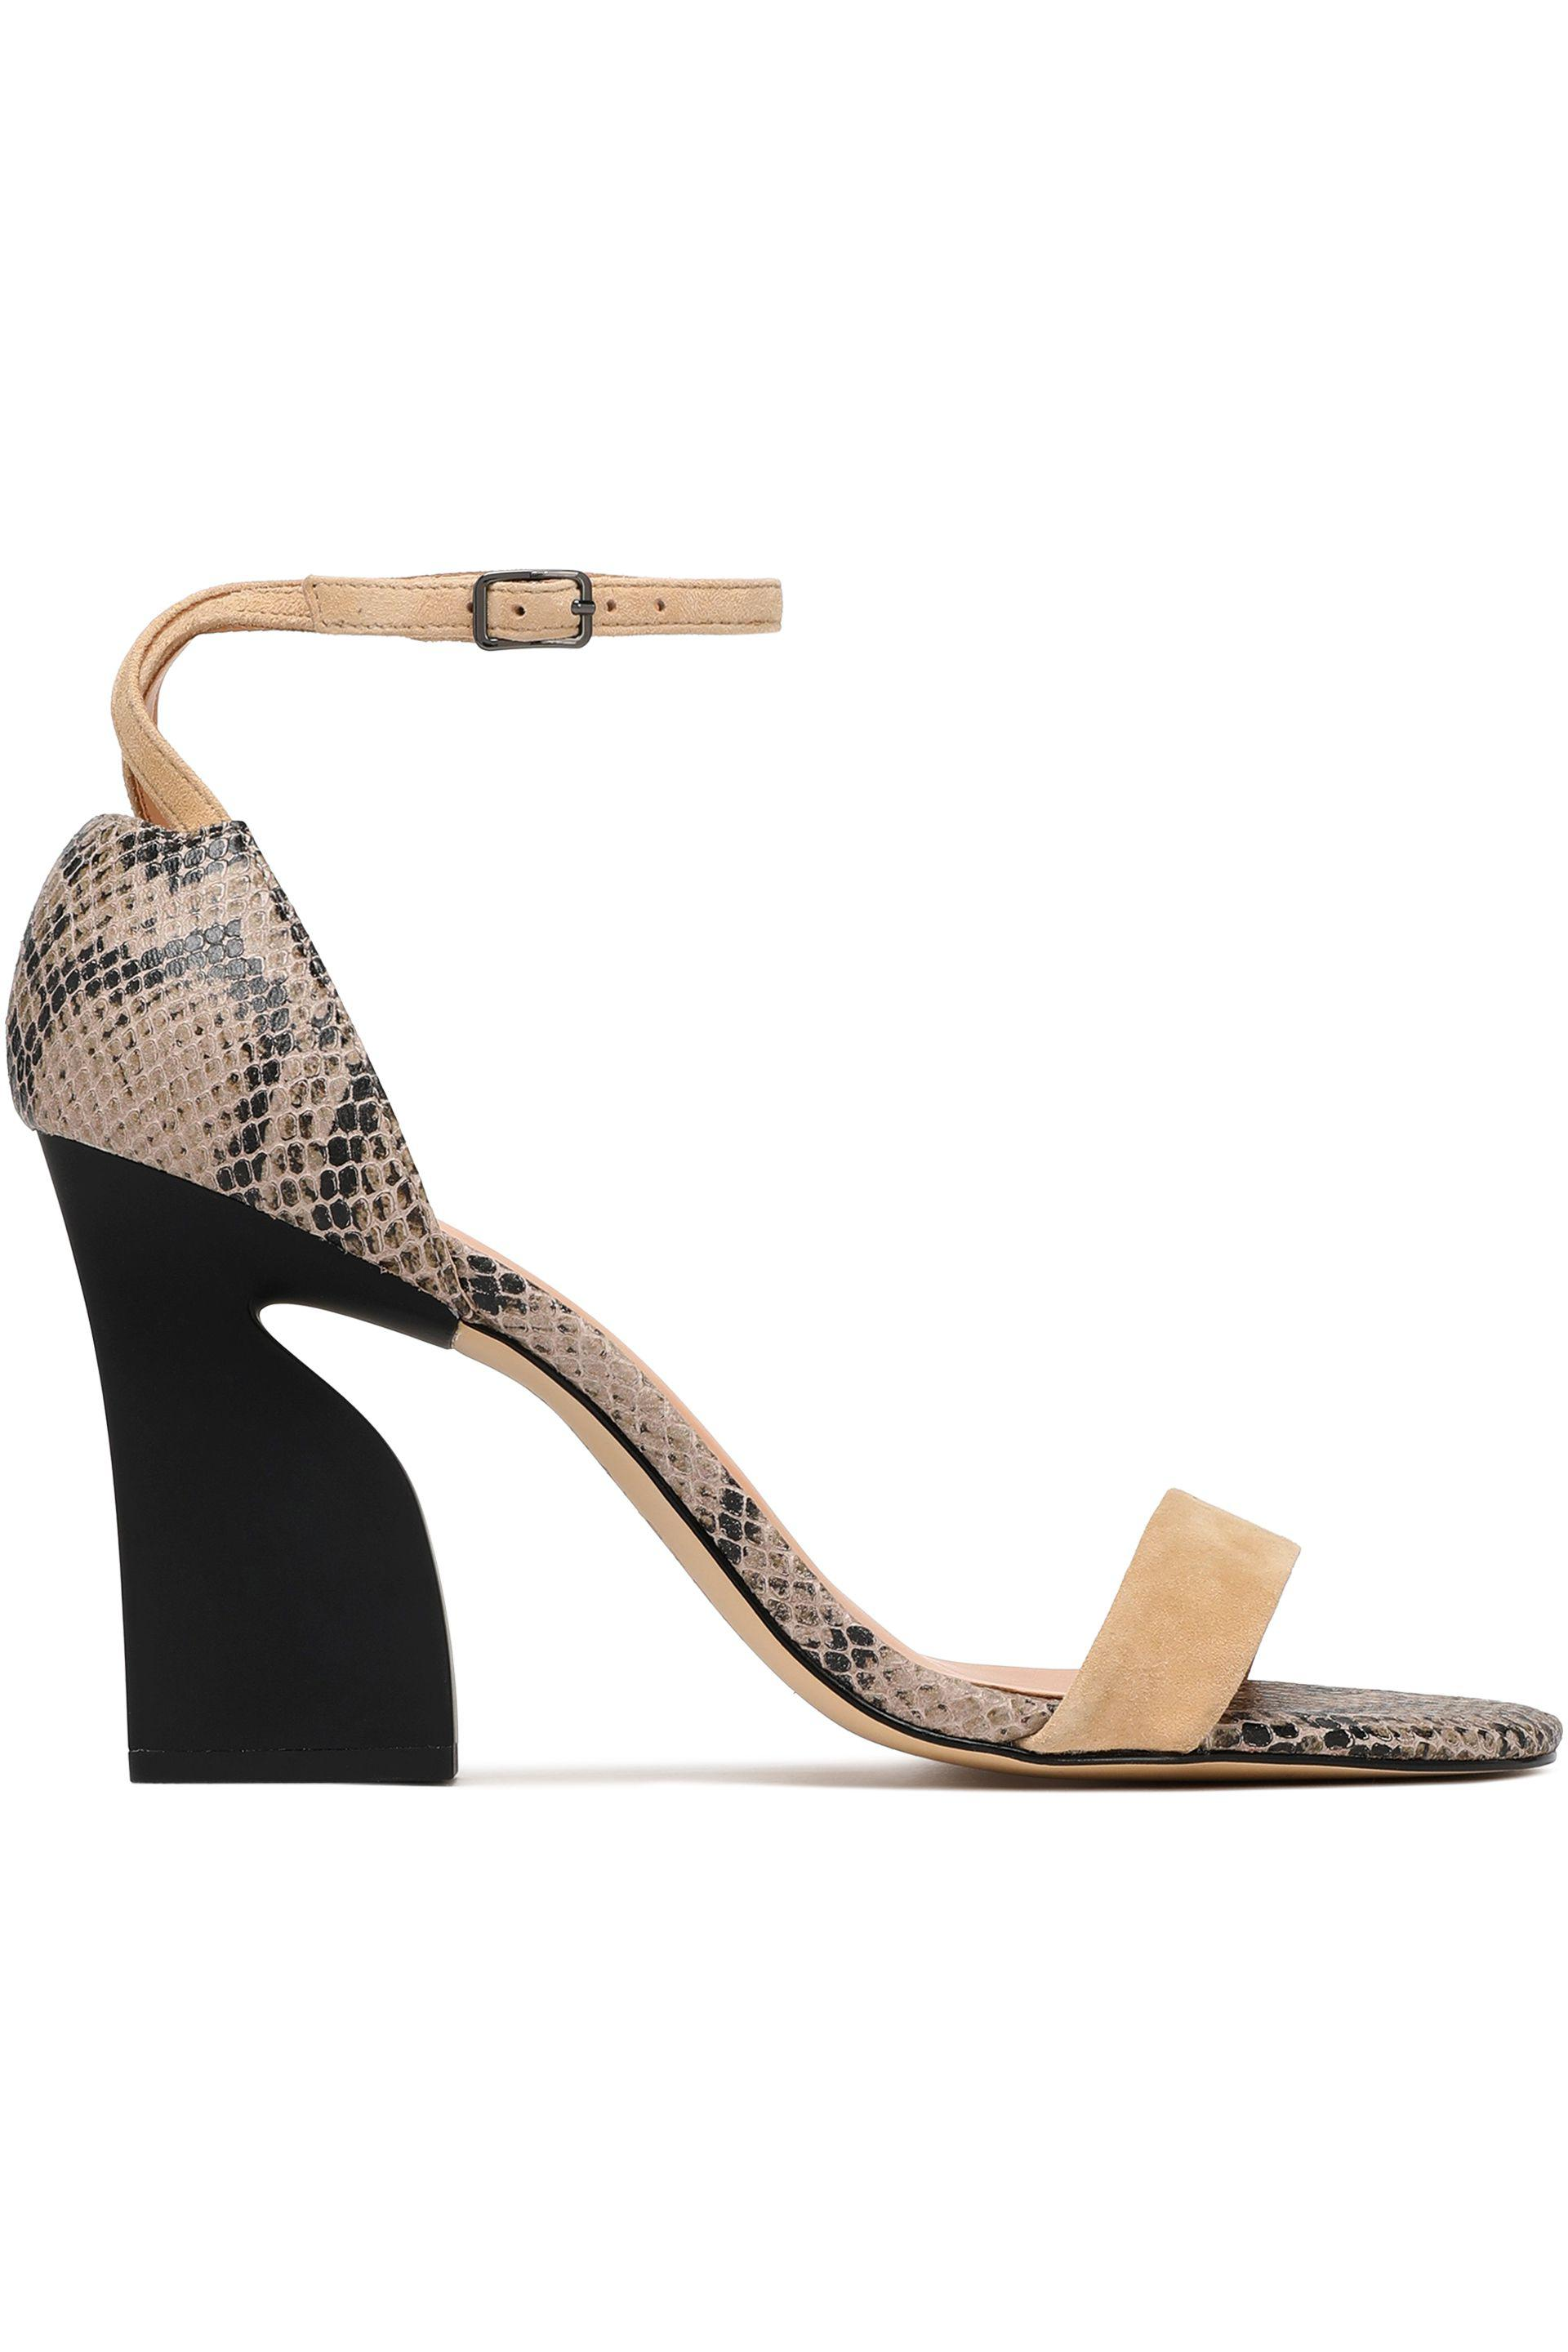 283f3ff72 halston-heritage-Beige-Snake-effect-Leather-And-Suede-Sandals.jpeg